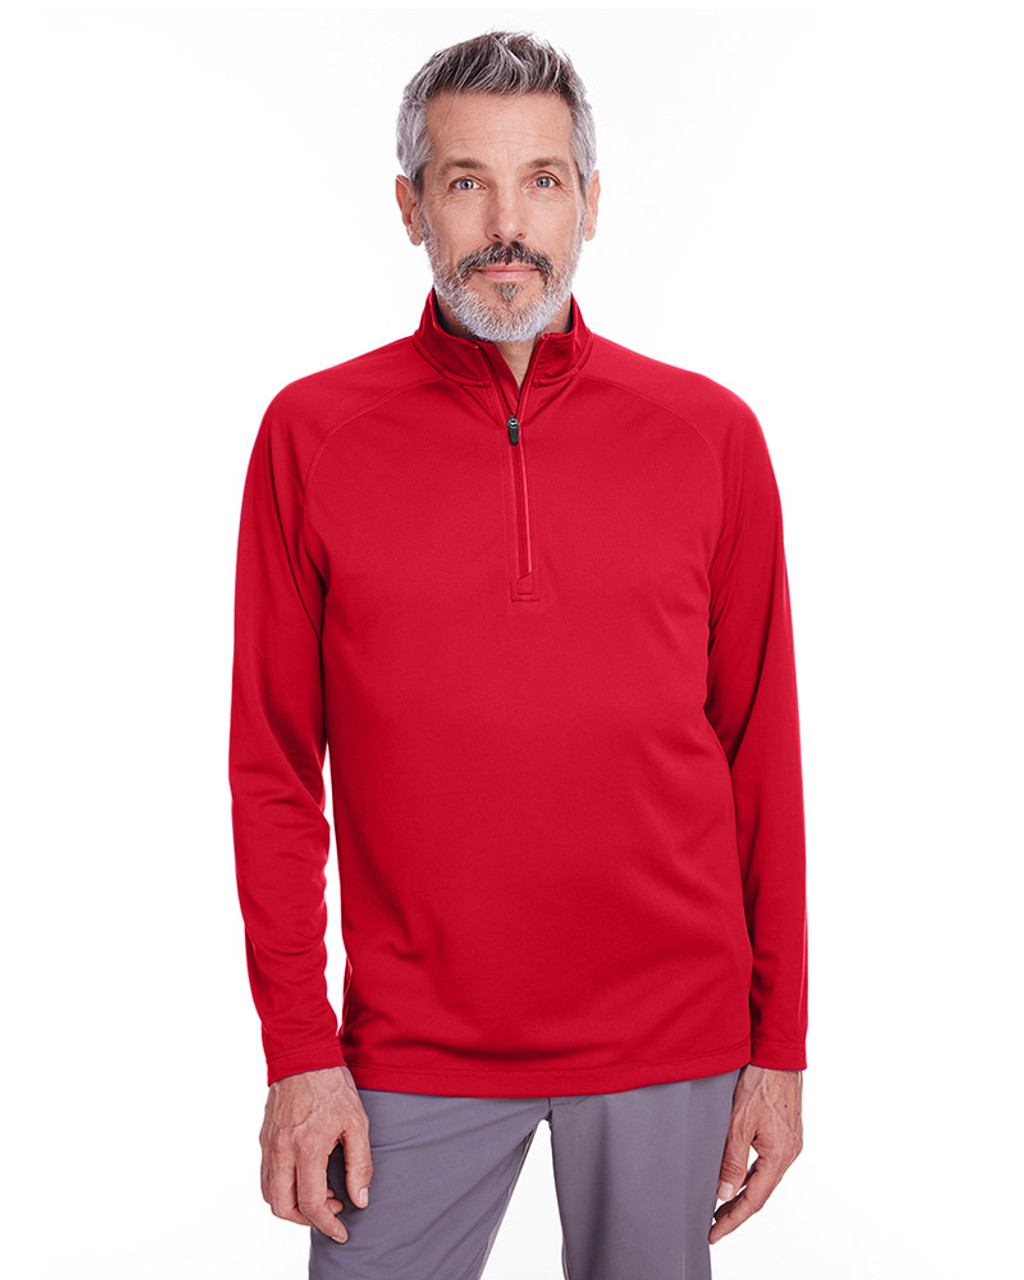 Red - S16797 Spyder Men's Freestyle Half-Zip Pullover Sweatshirt | Blankclothing.ca